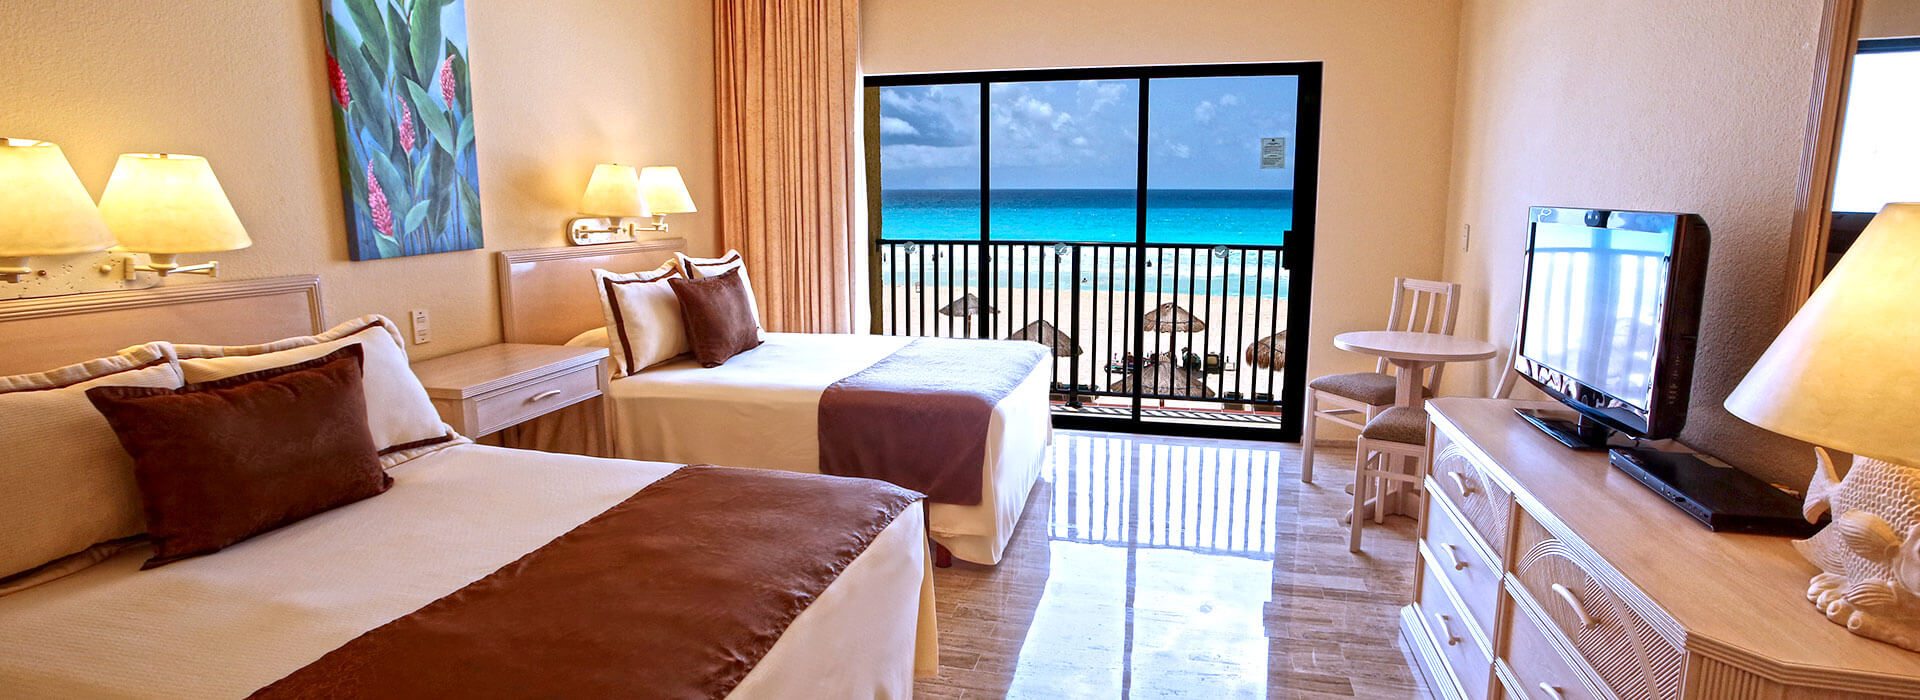 beachfront suites in Cancun resort